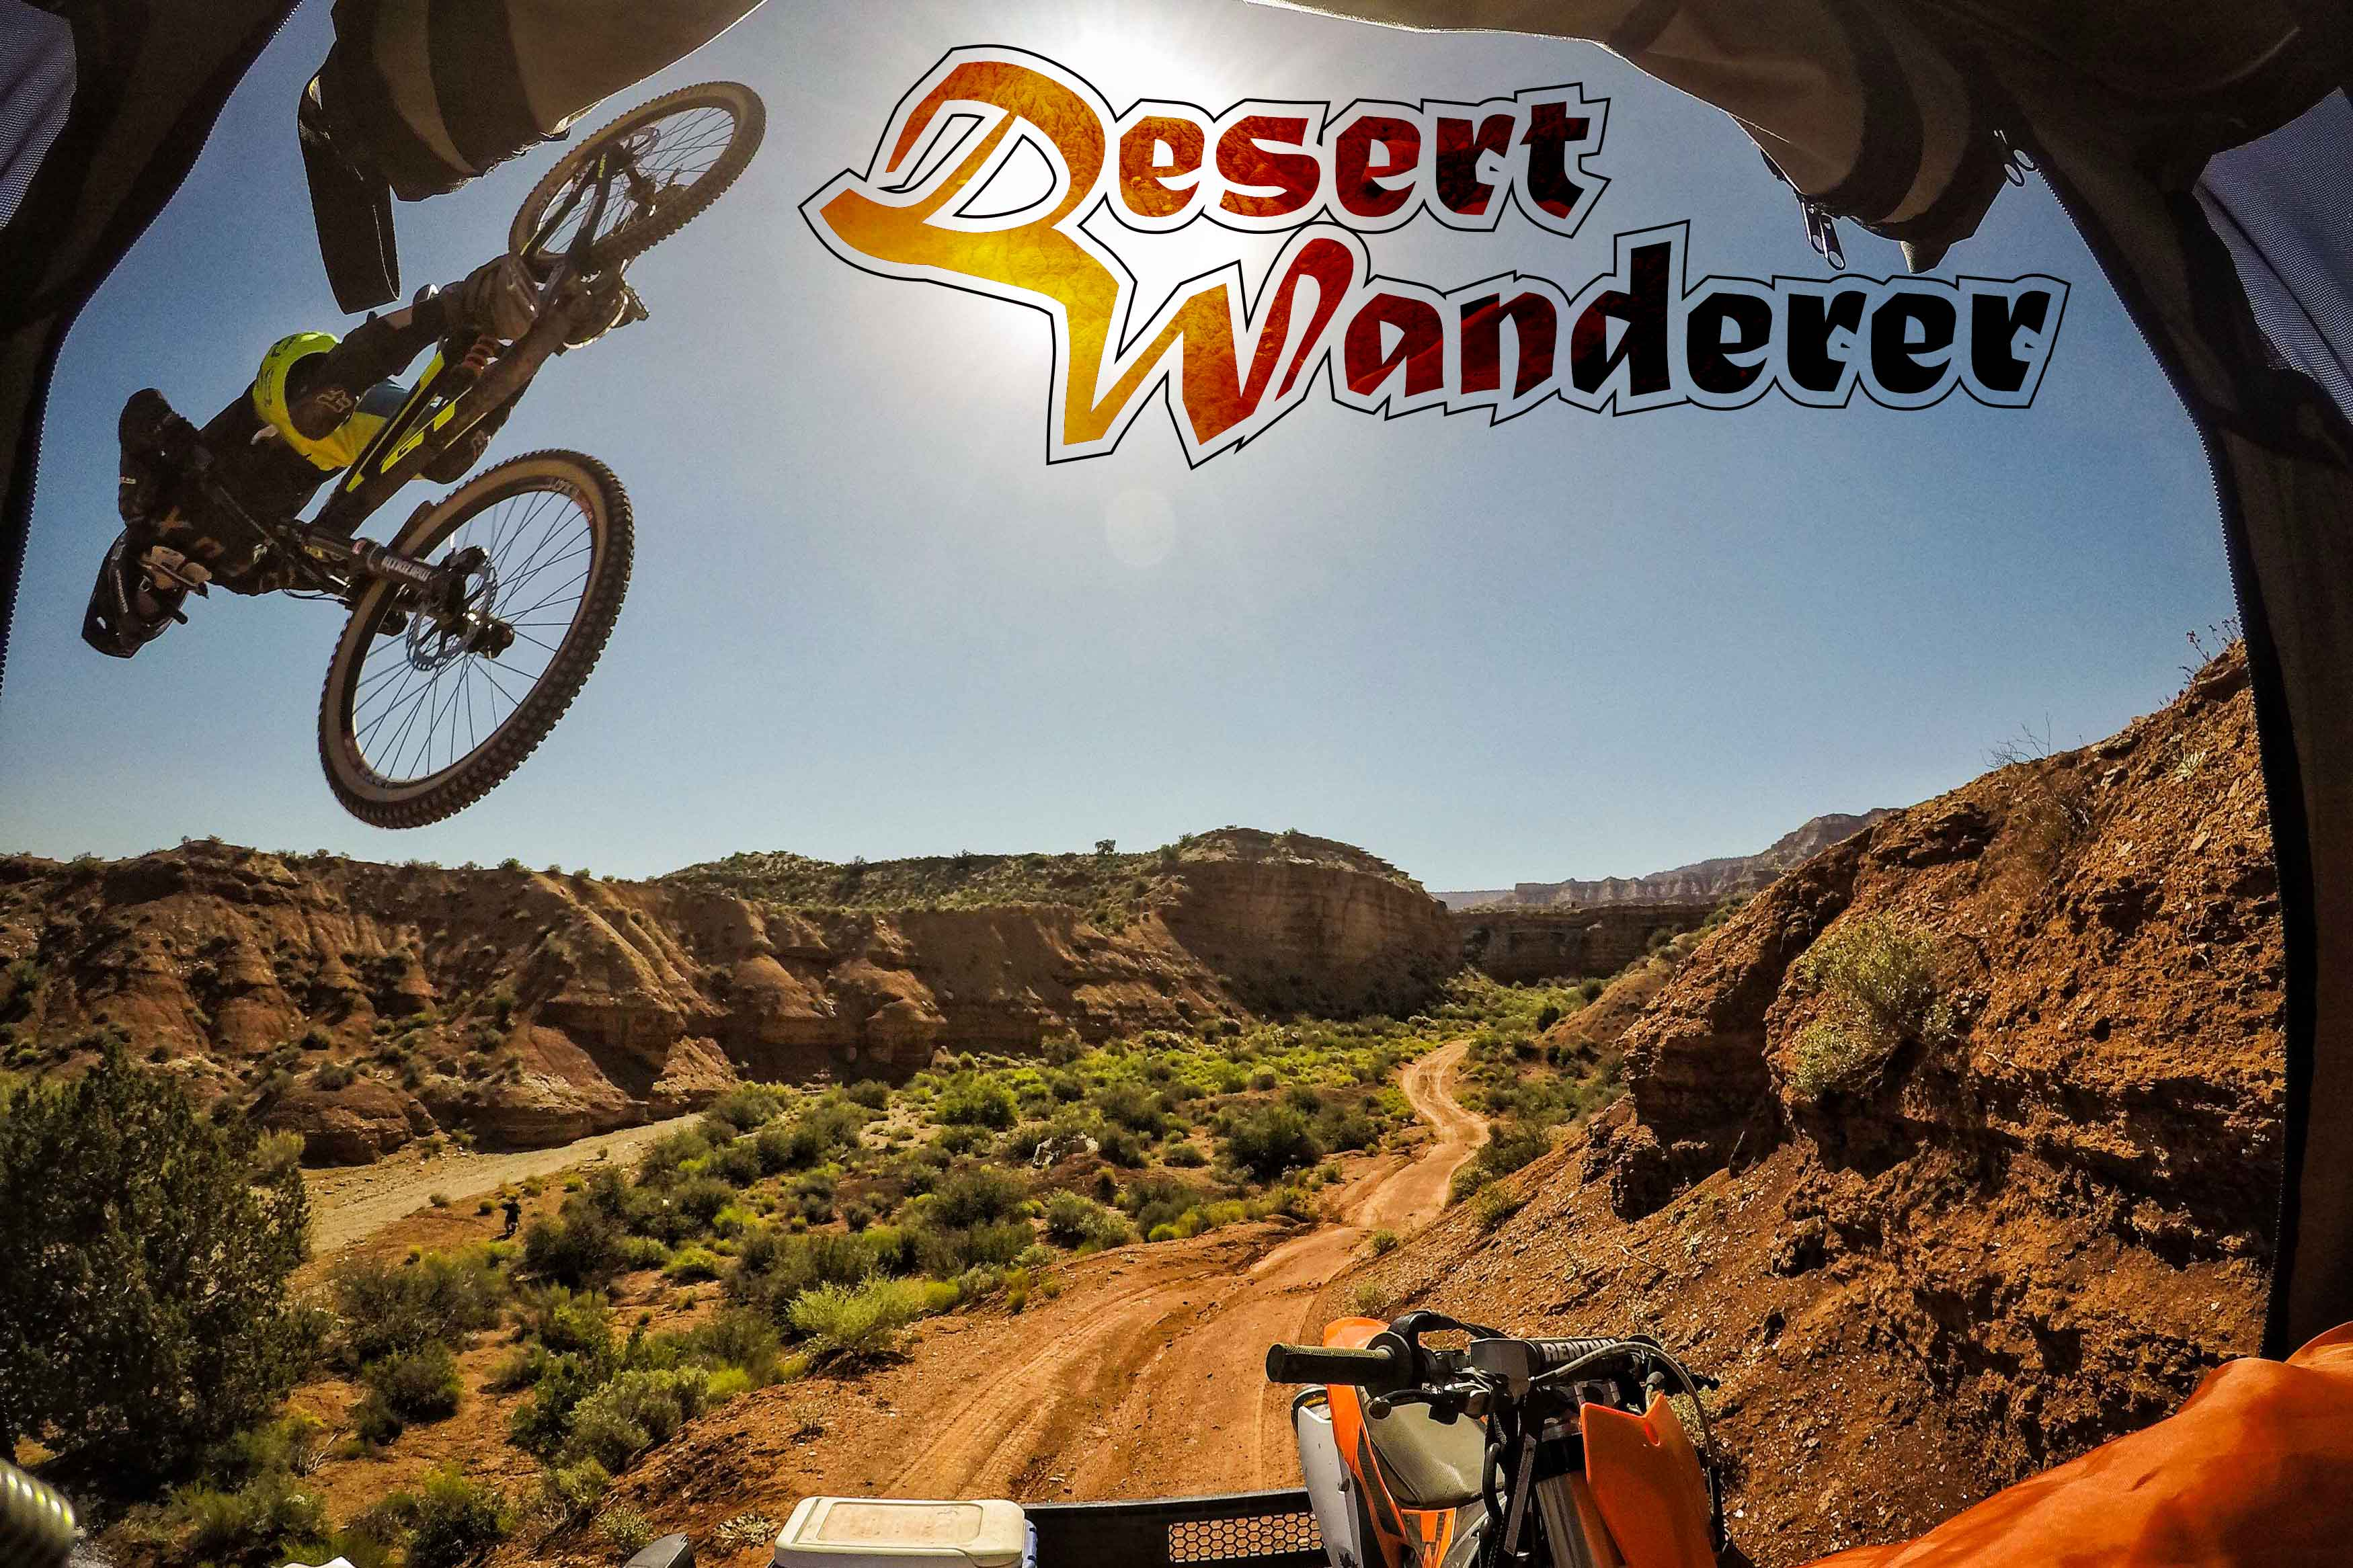 Feature: Desert Wanderer